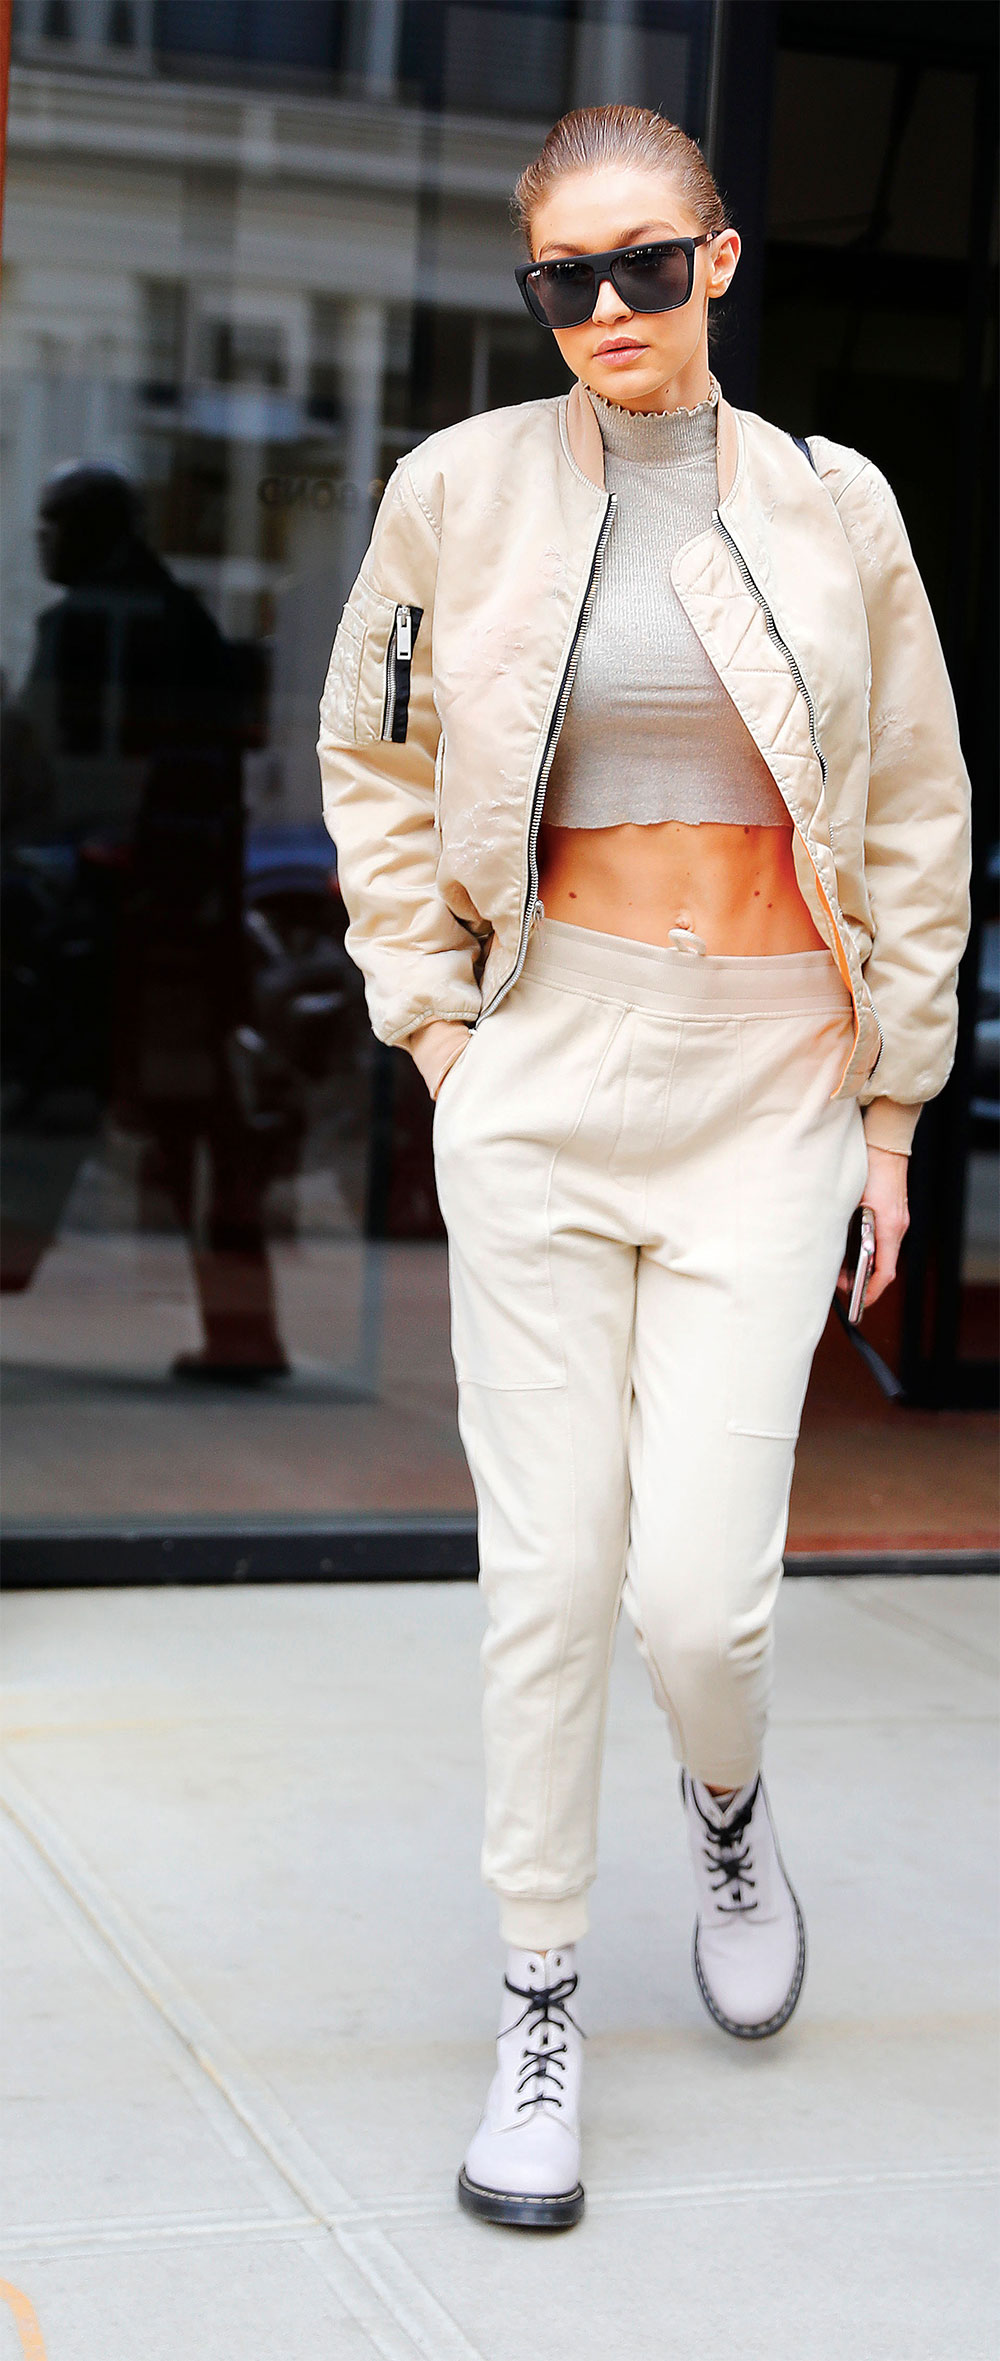 gigi hadid daily sport outfit